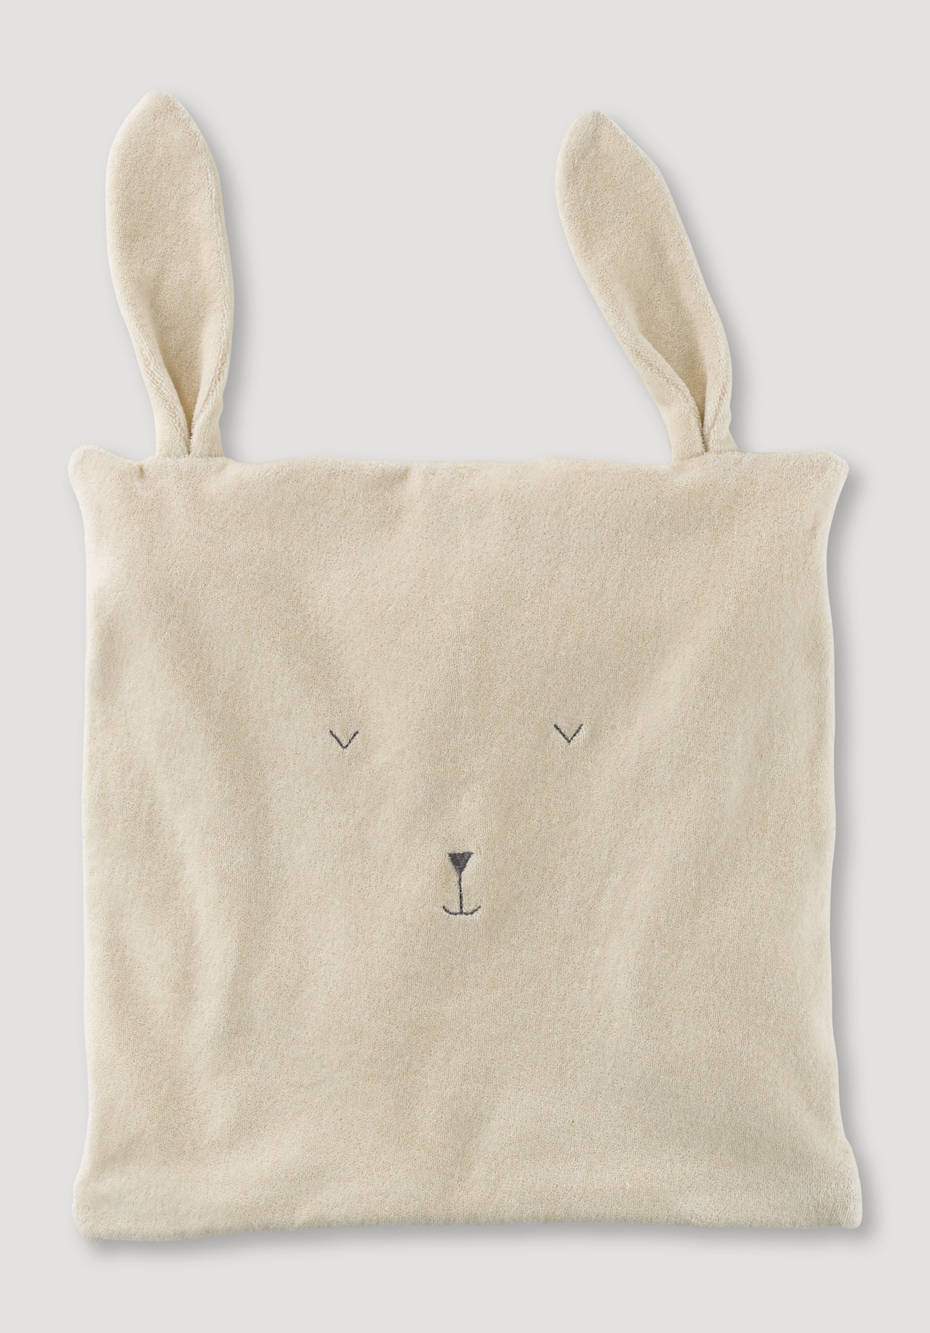 Bunny cushion cover made of pure organic cotton